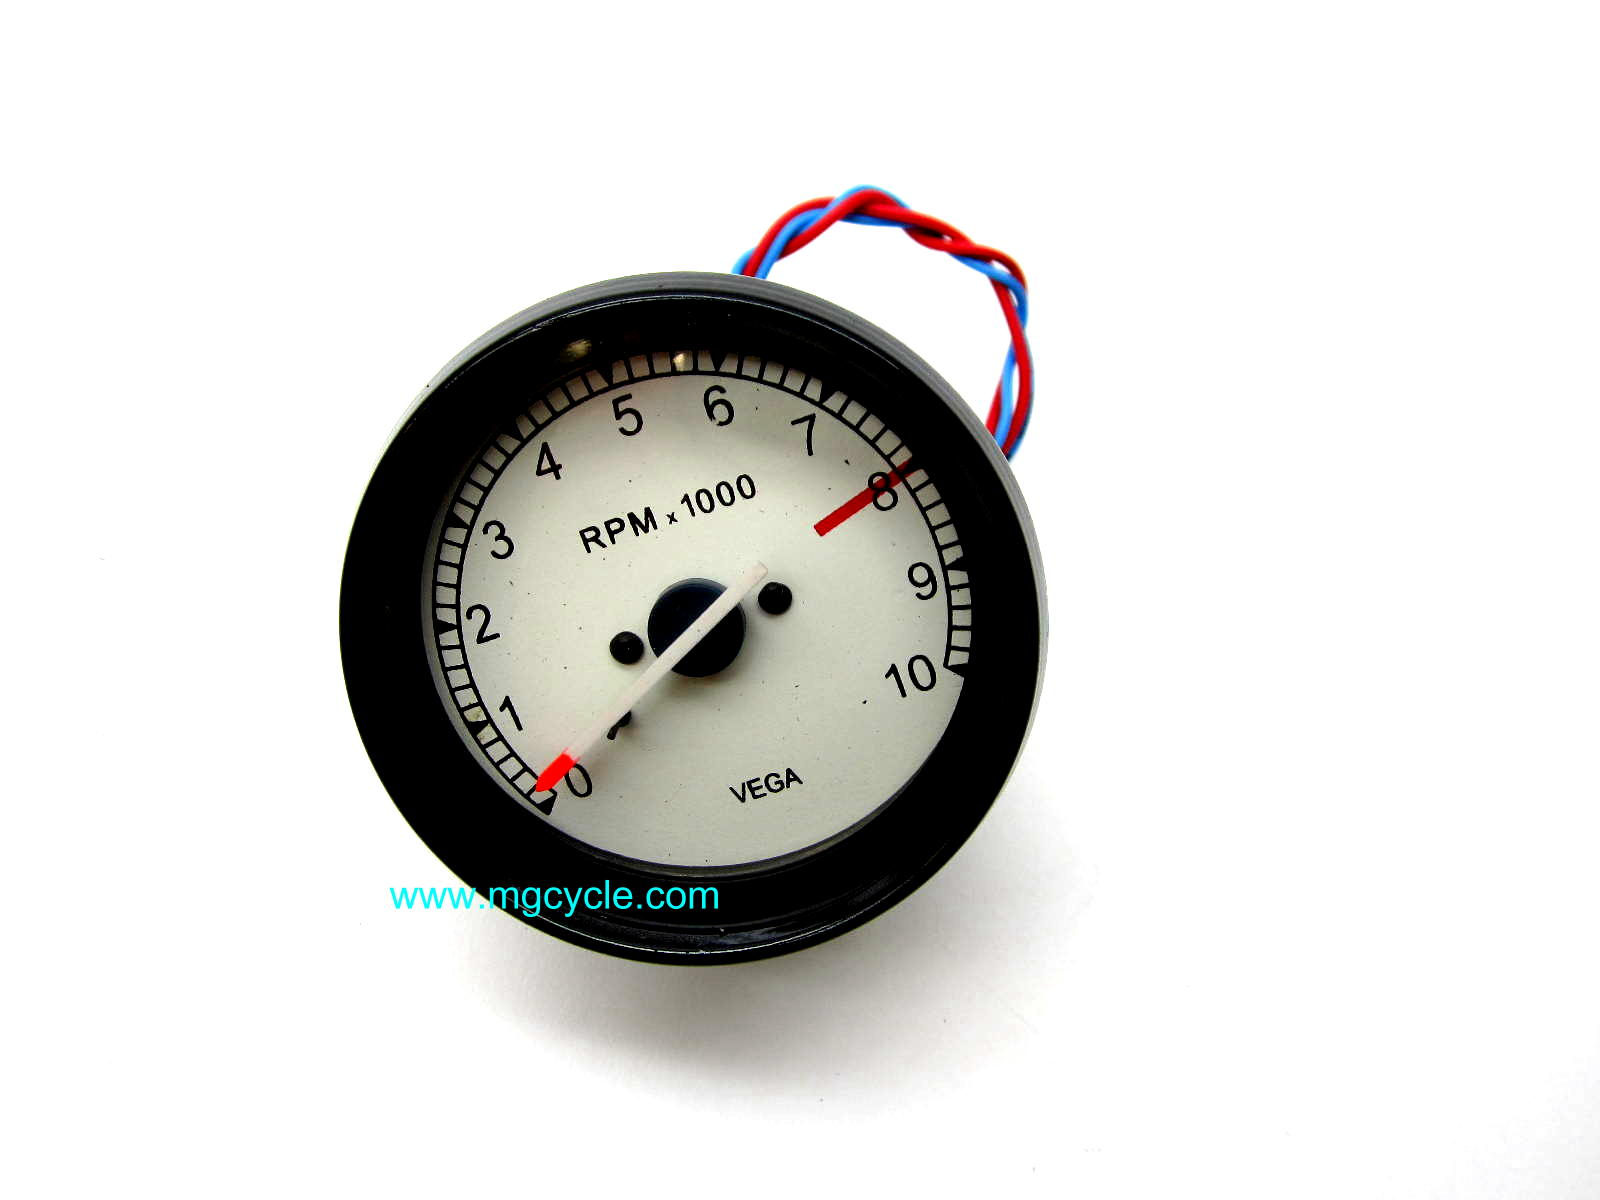 VEGA tachometer, 80mm, lighted